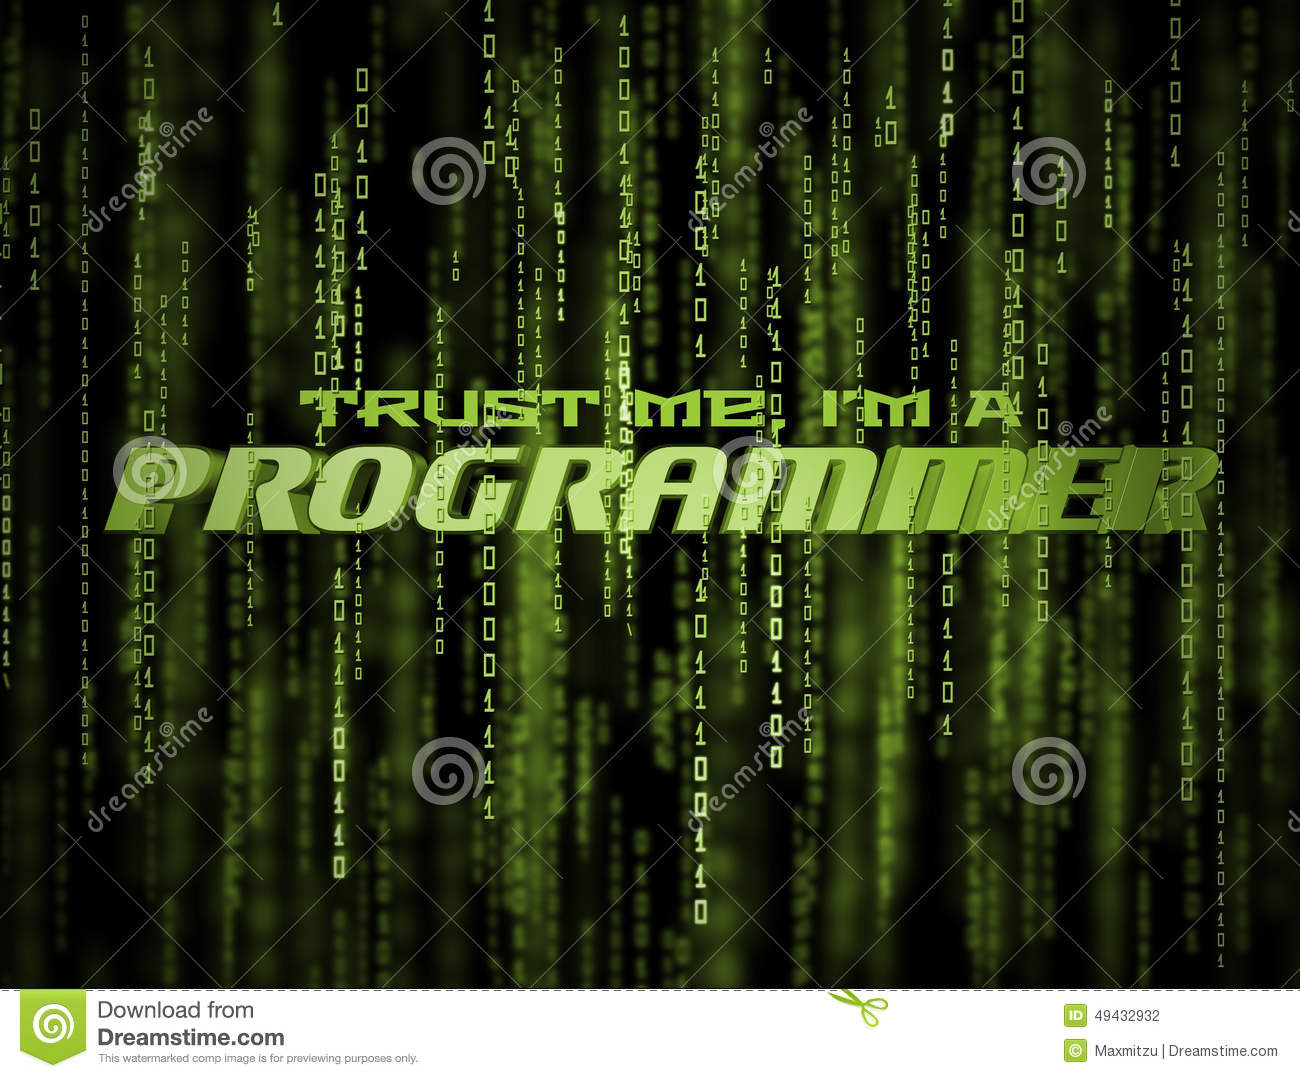 3D Programmer Matrix Stock Illustration - Image: 49432932